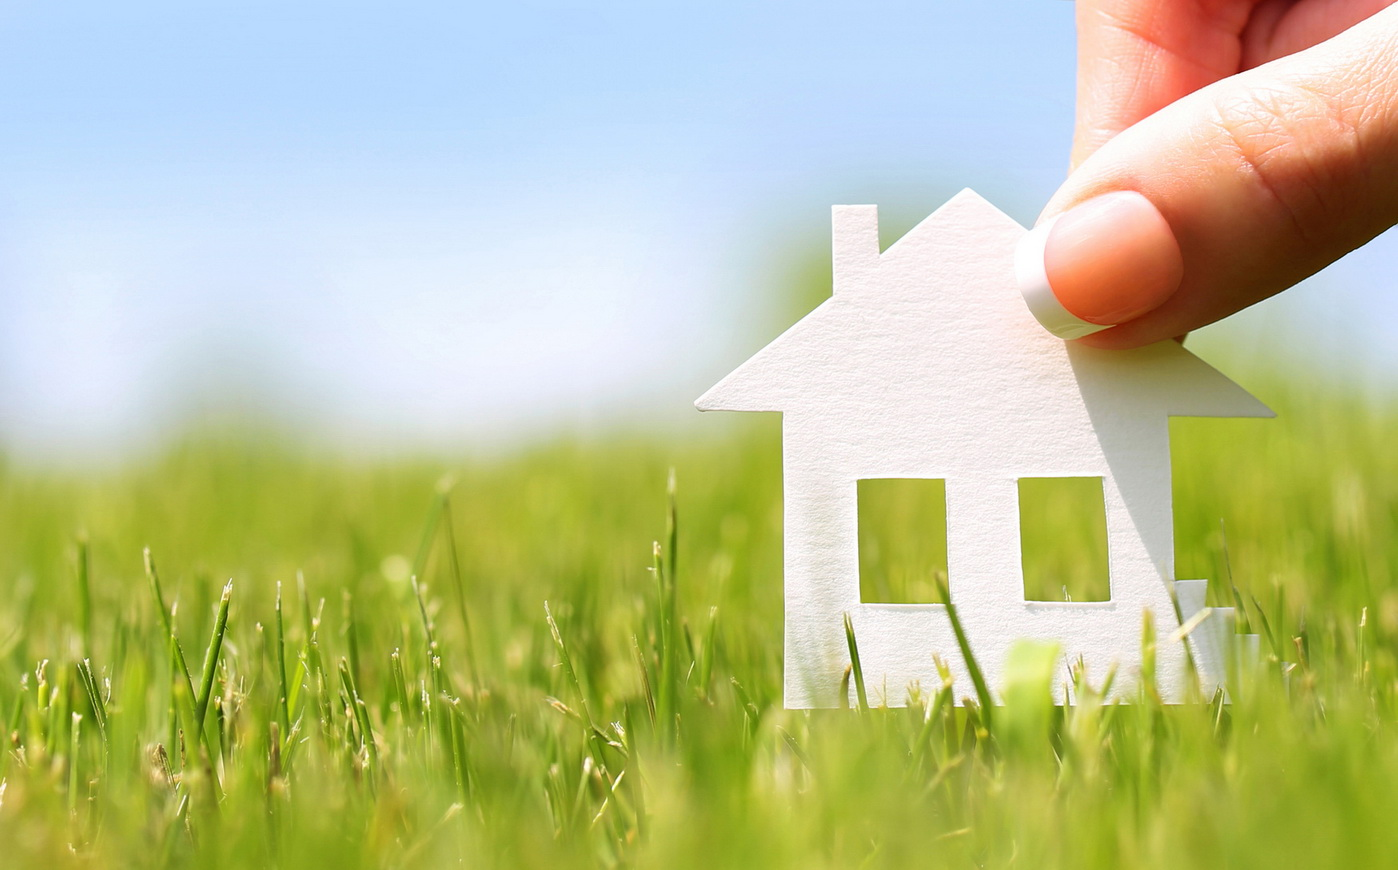 Paper house in green grass over blue sky. Mortgage concept